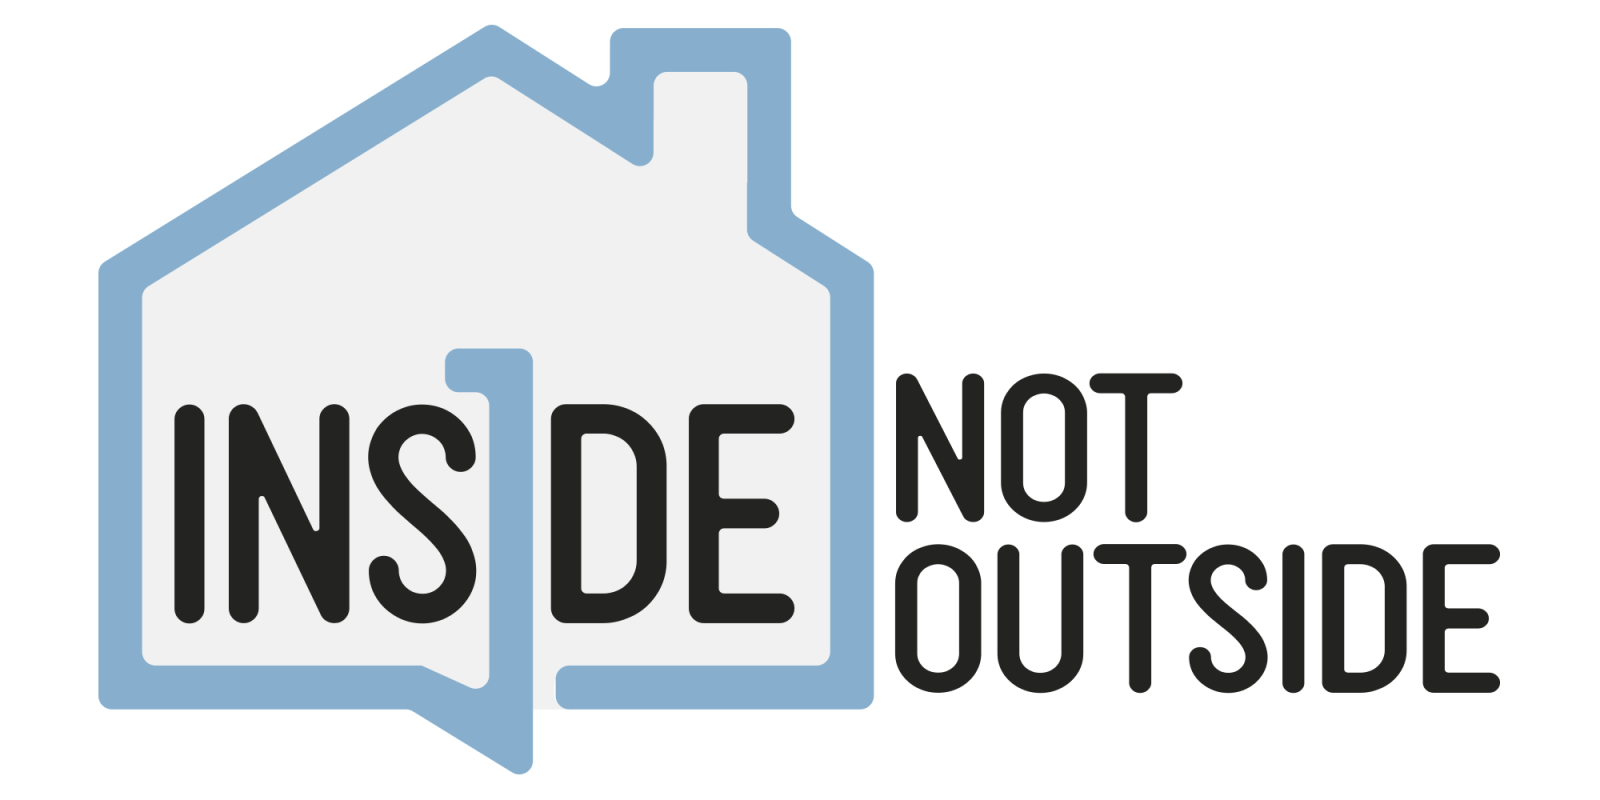 The inside not outside logo